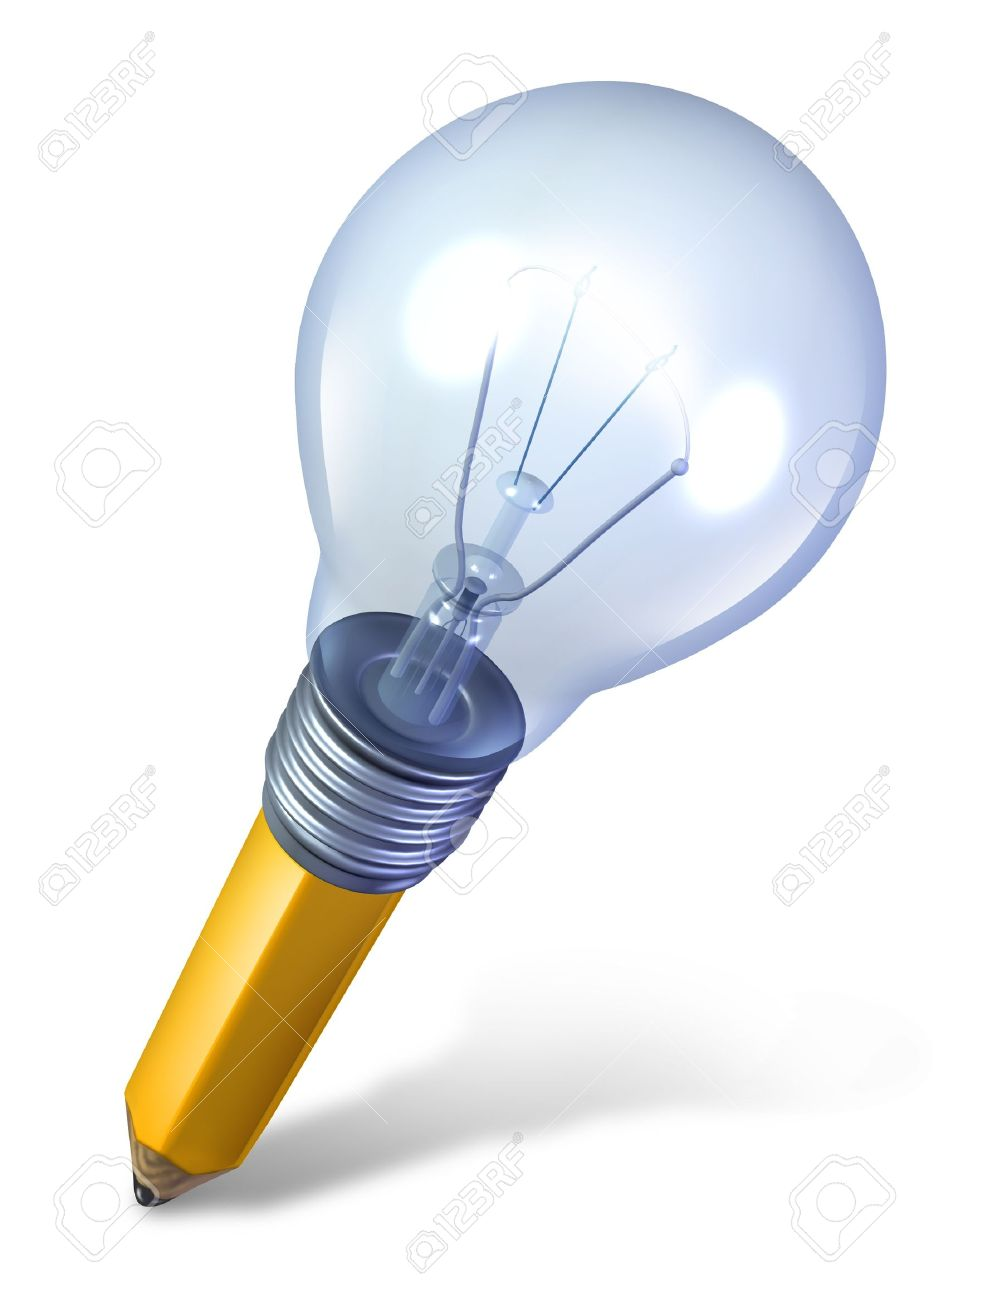 Creative tool and ideas icon with an angled pencil and a lightbulb fused together as a symbol of creativity and innovation Stock Photo - 12667459